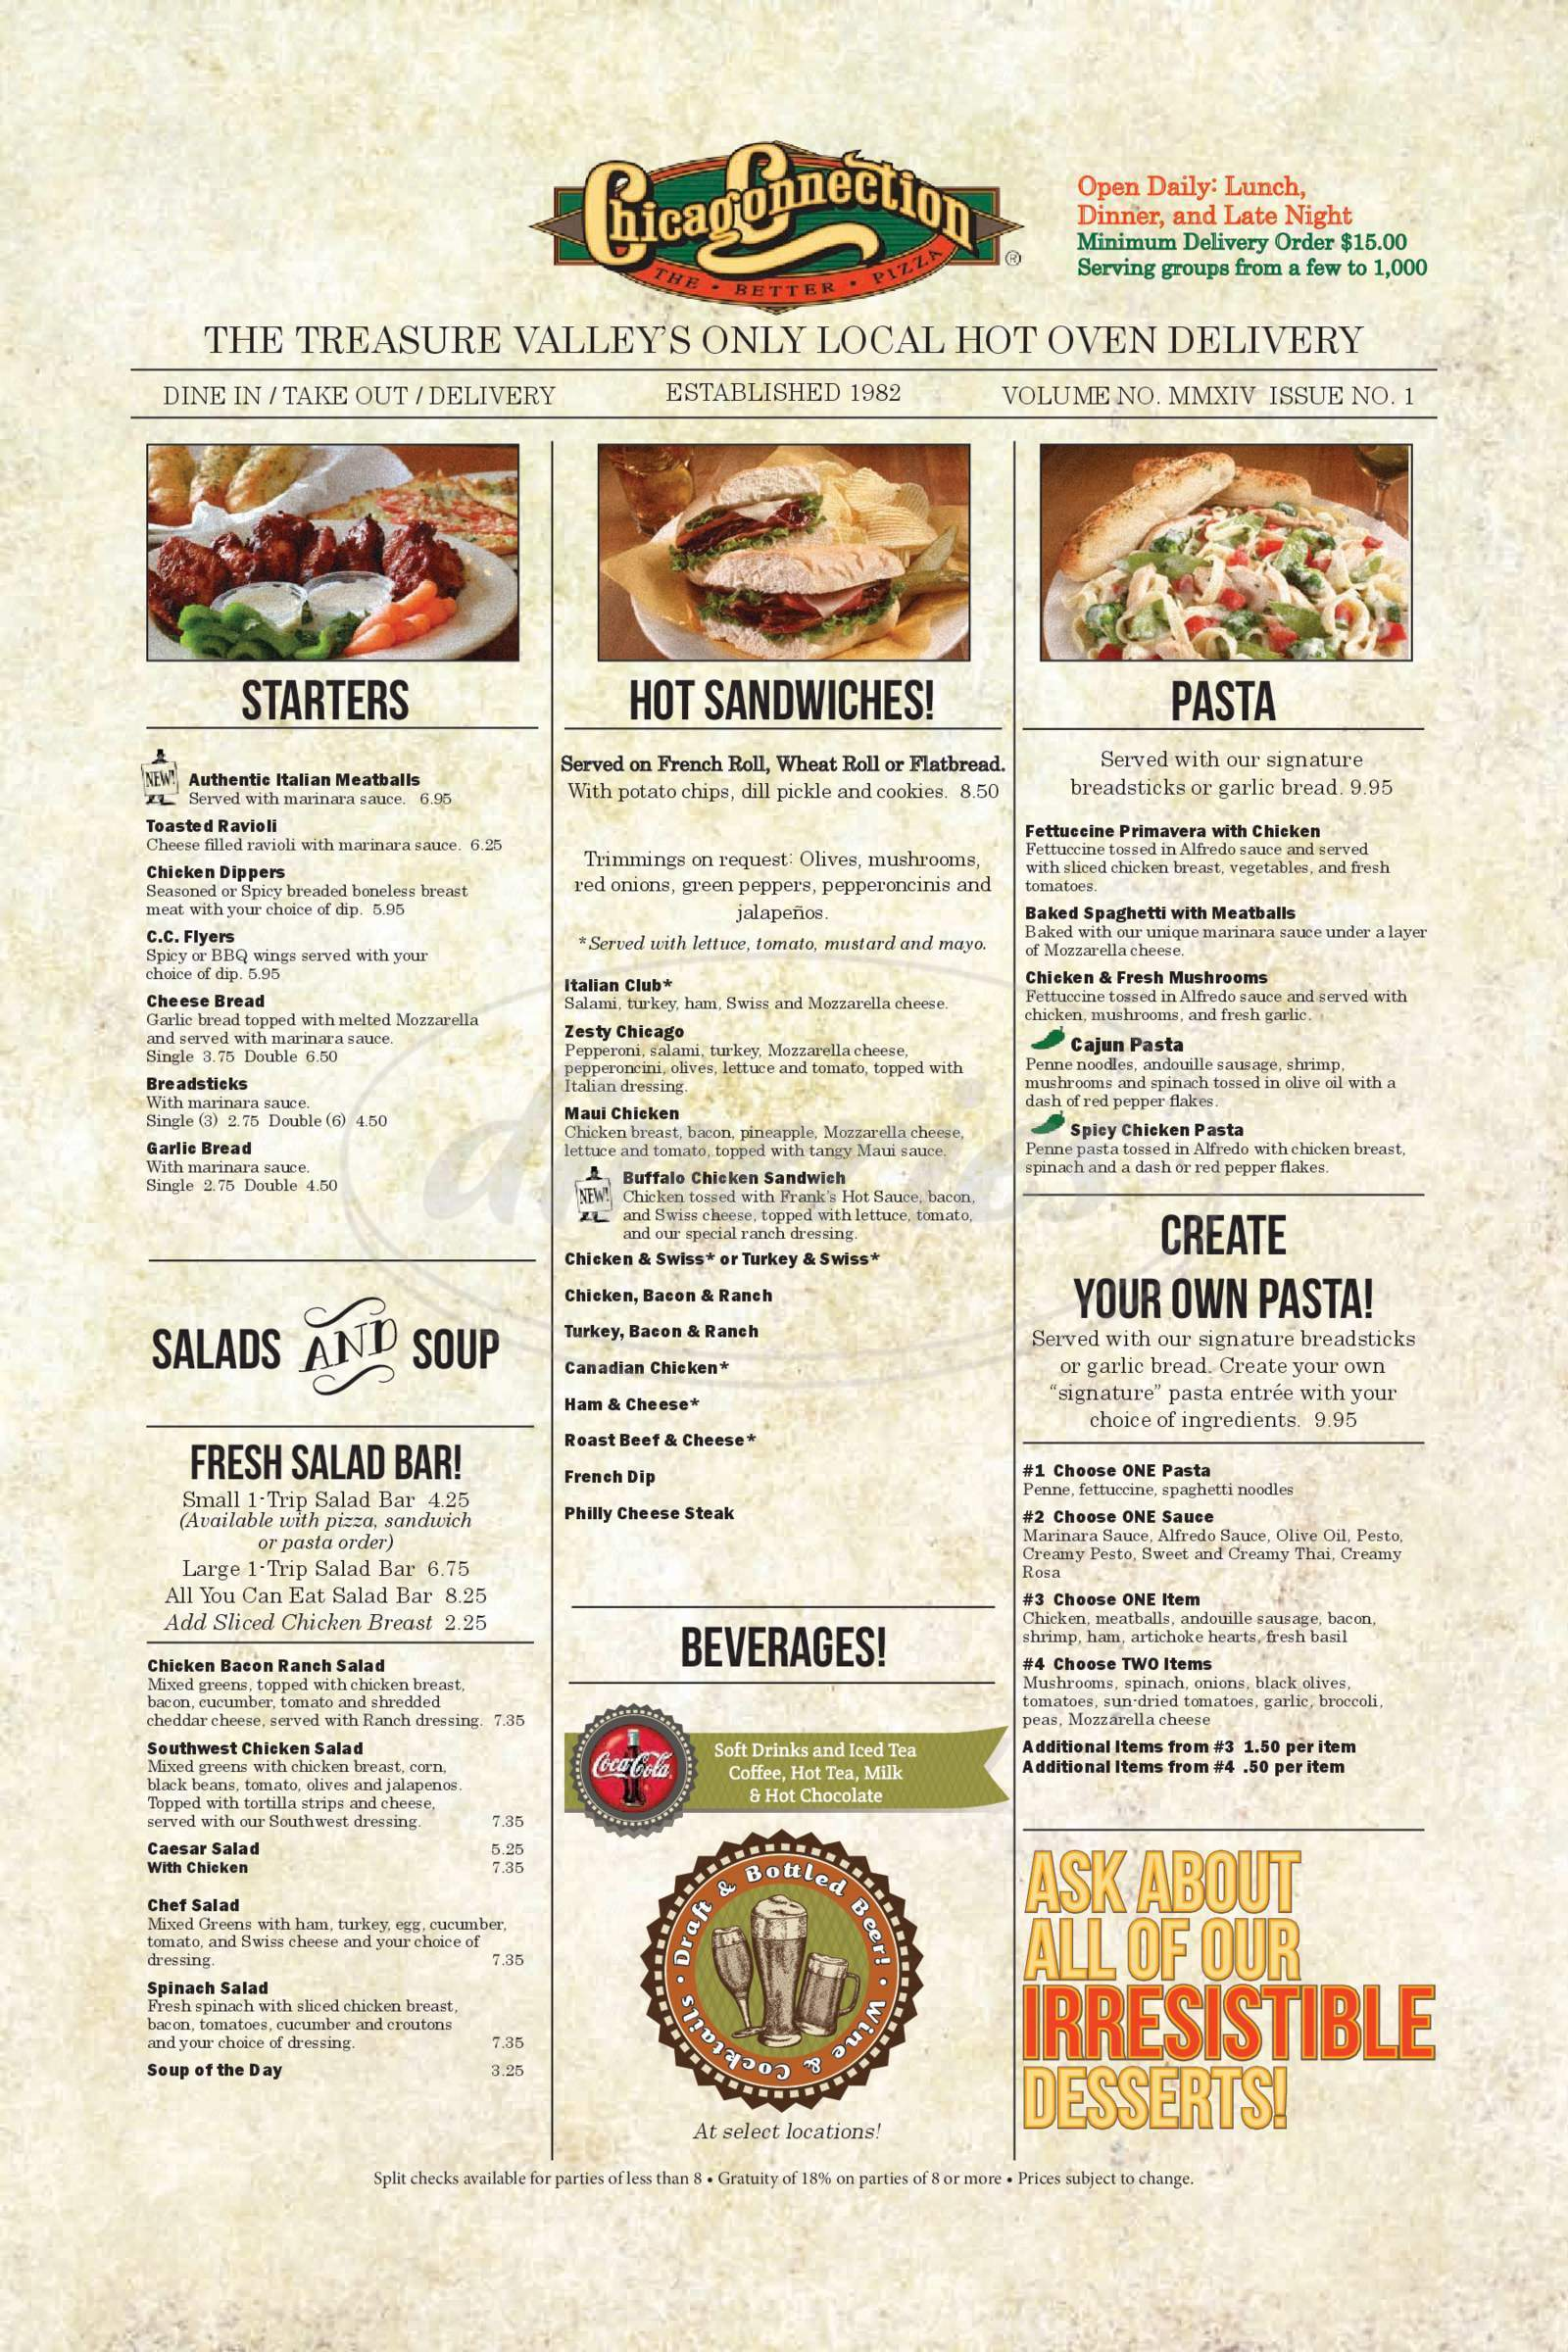 menu for Chicago Connection